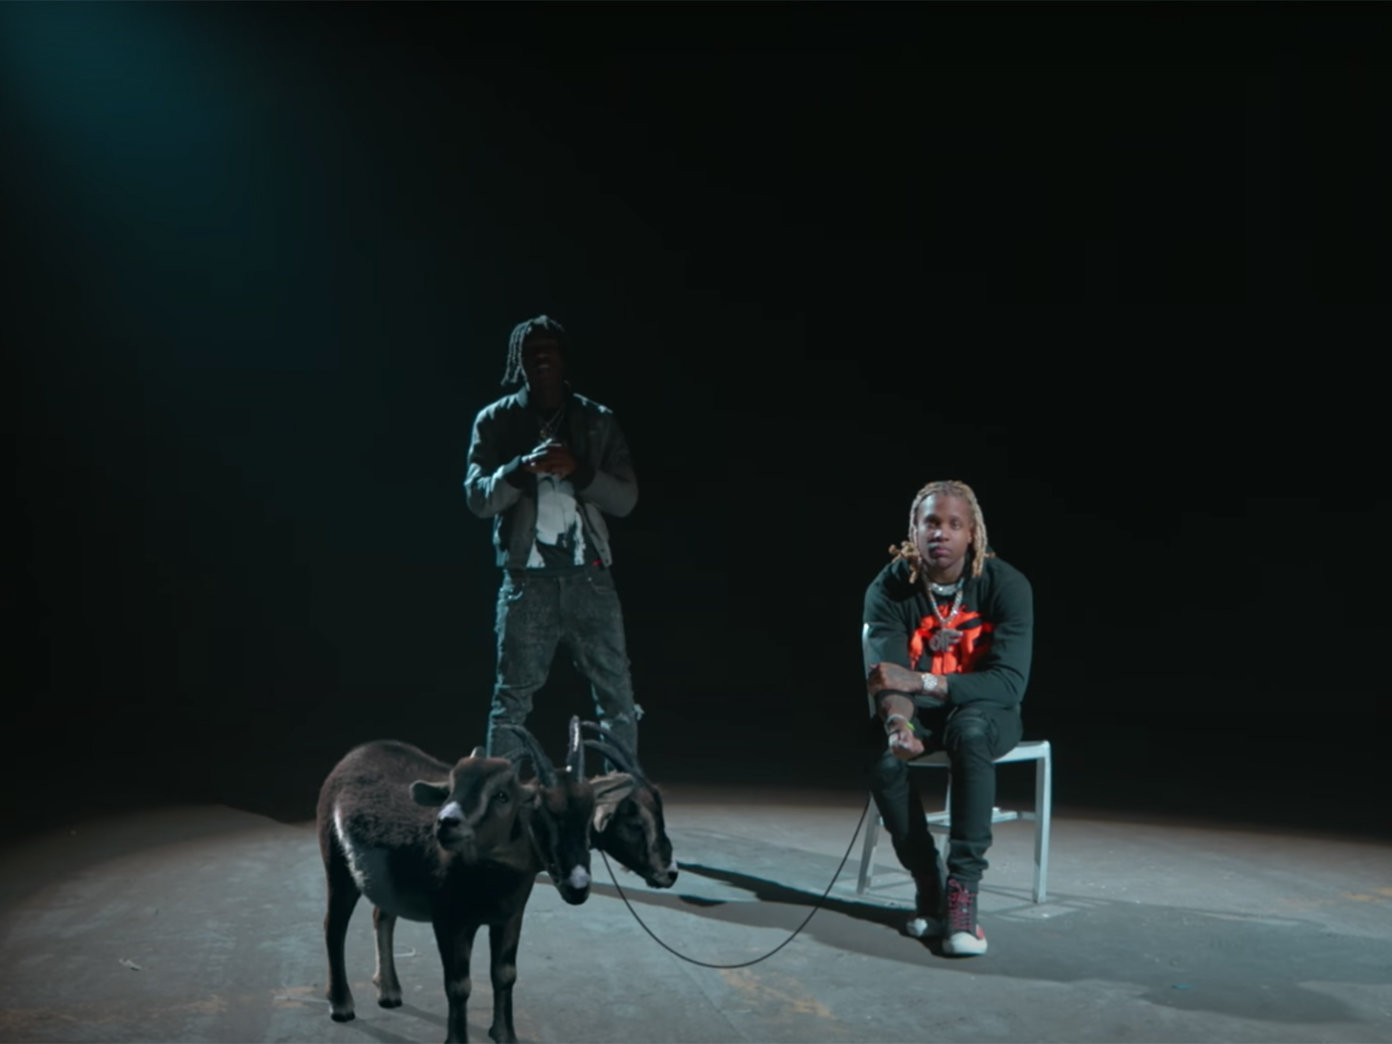 """Lil Durk Holds """"3 Headed Goat"""" in New Visual with Polo G and Lil Baby"""